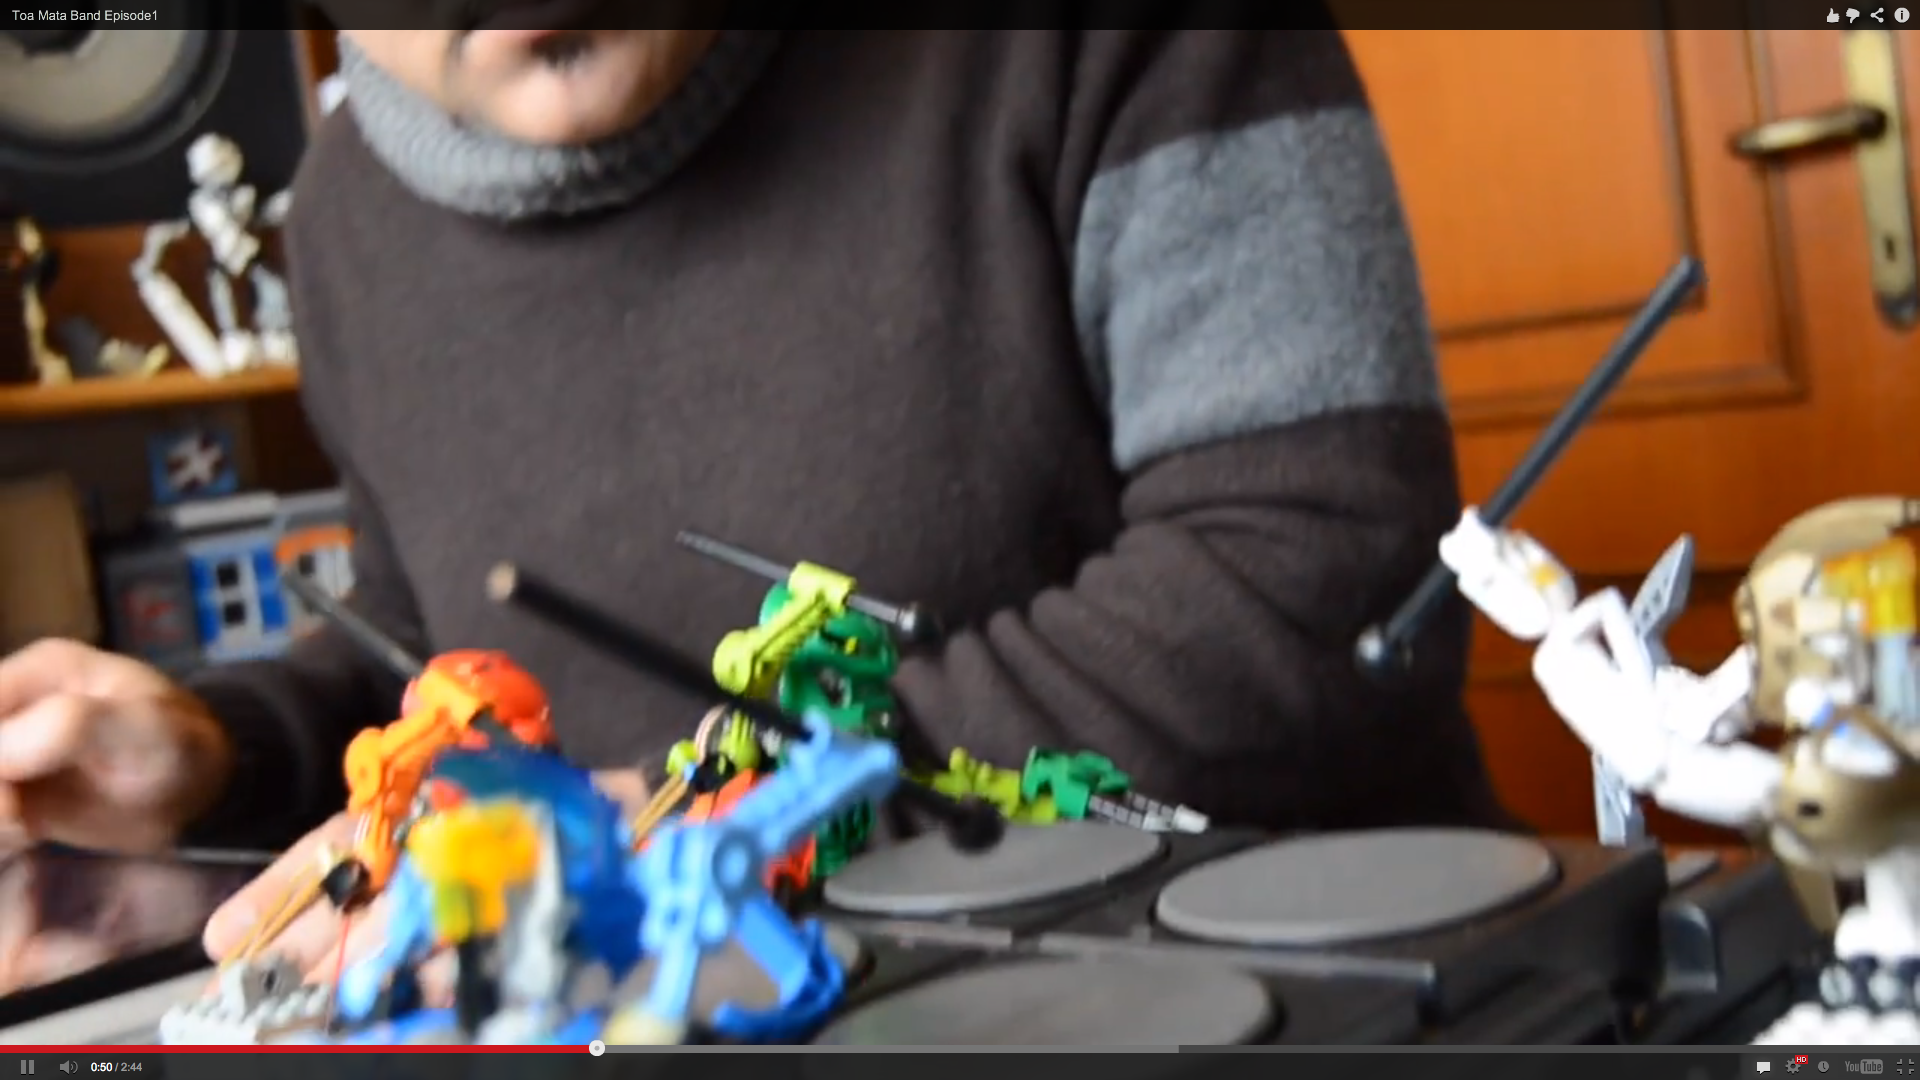 Cool Music + Lego Robots